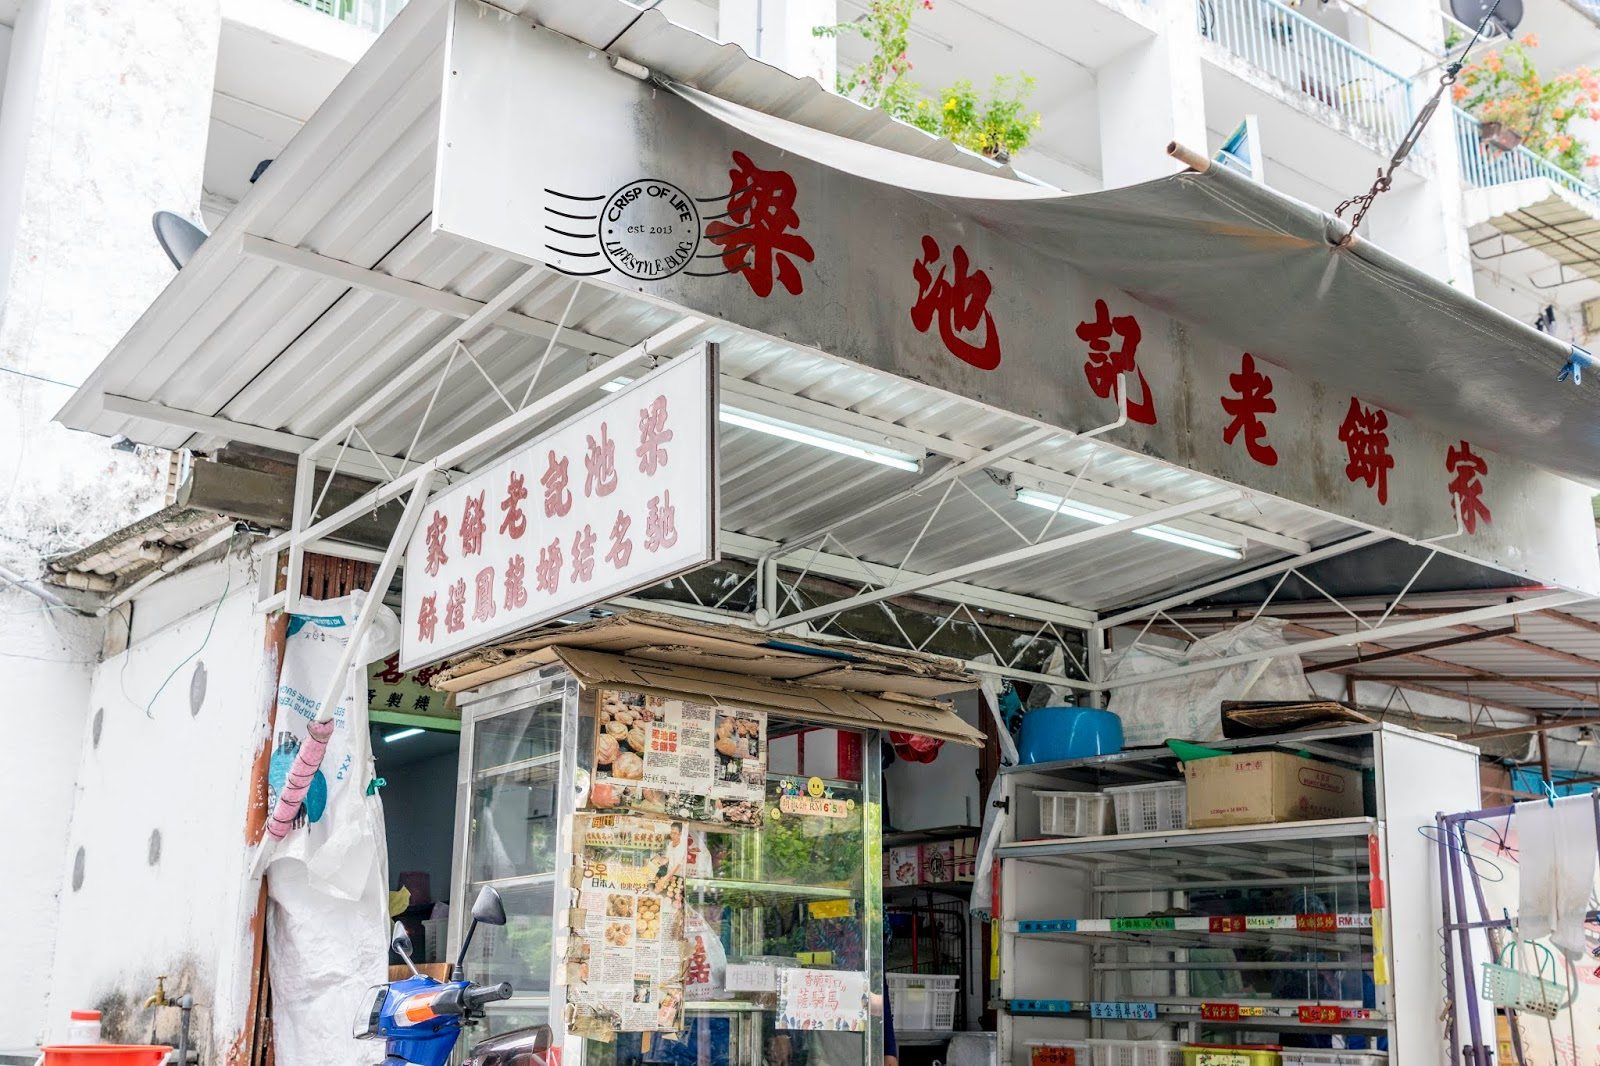 Leong Chee Kee Pepper Biscuit 梁池记老饼家 at Lebuh Cintra, Georgetown, Penang